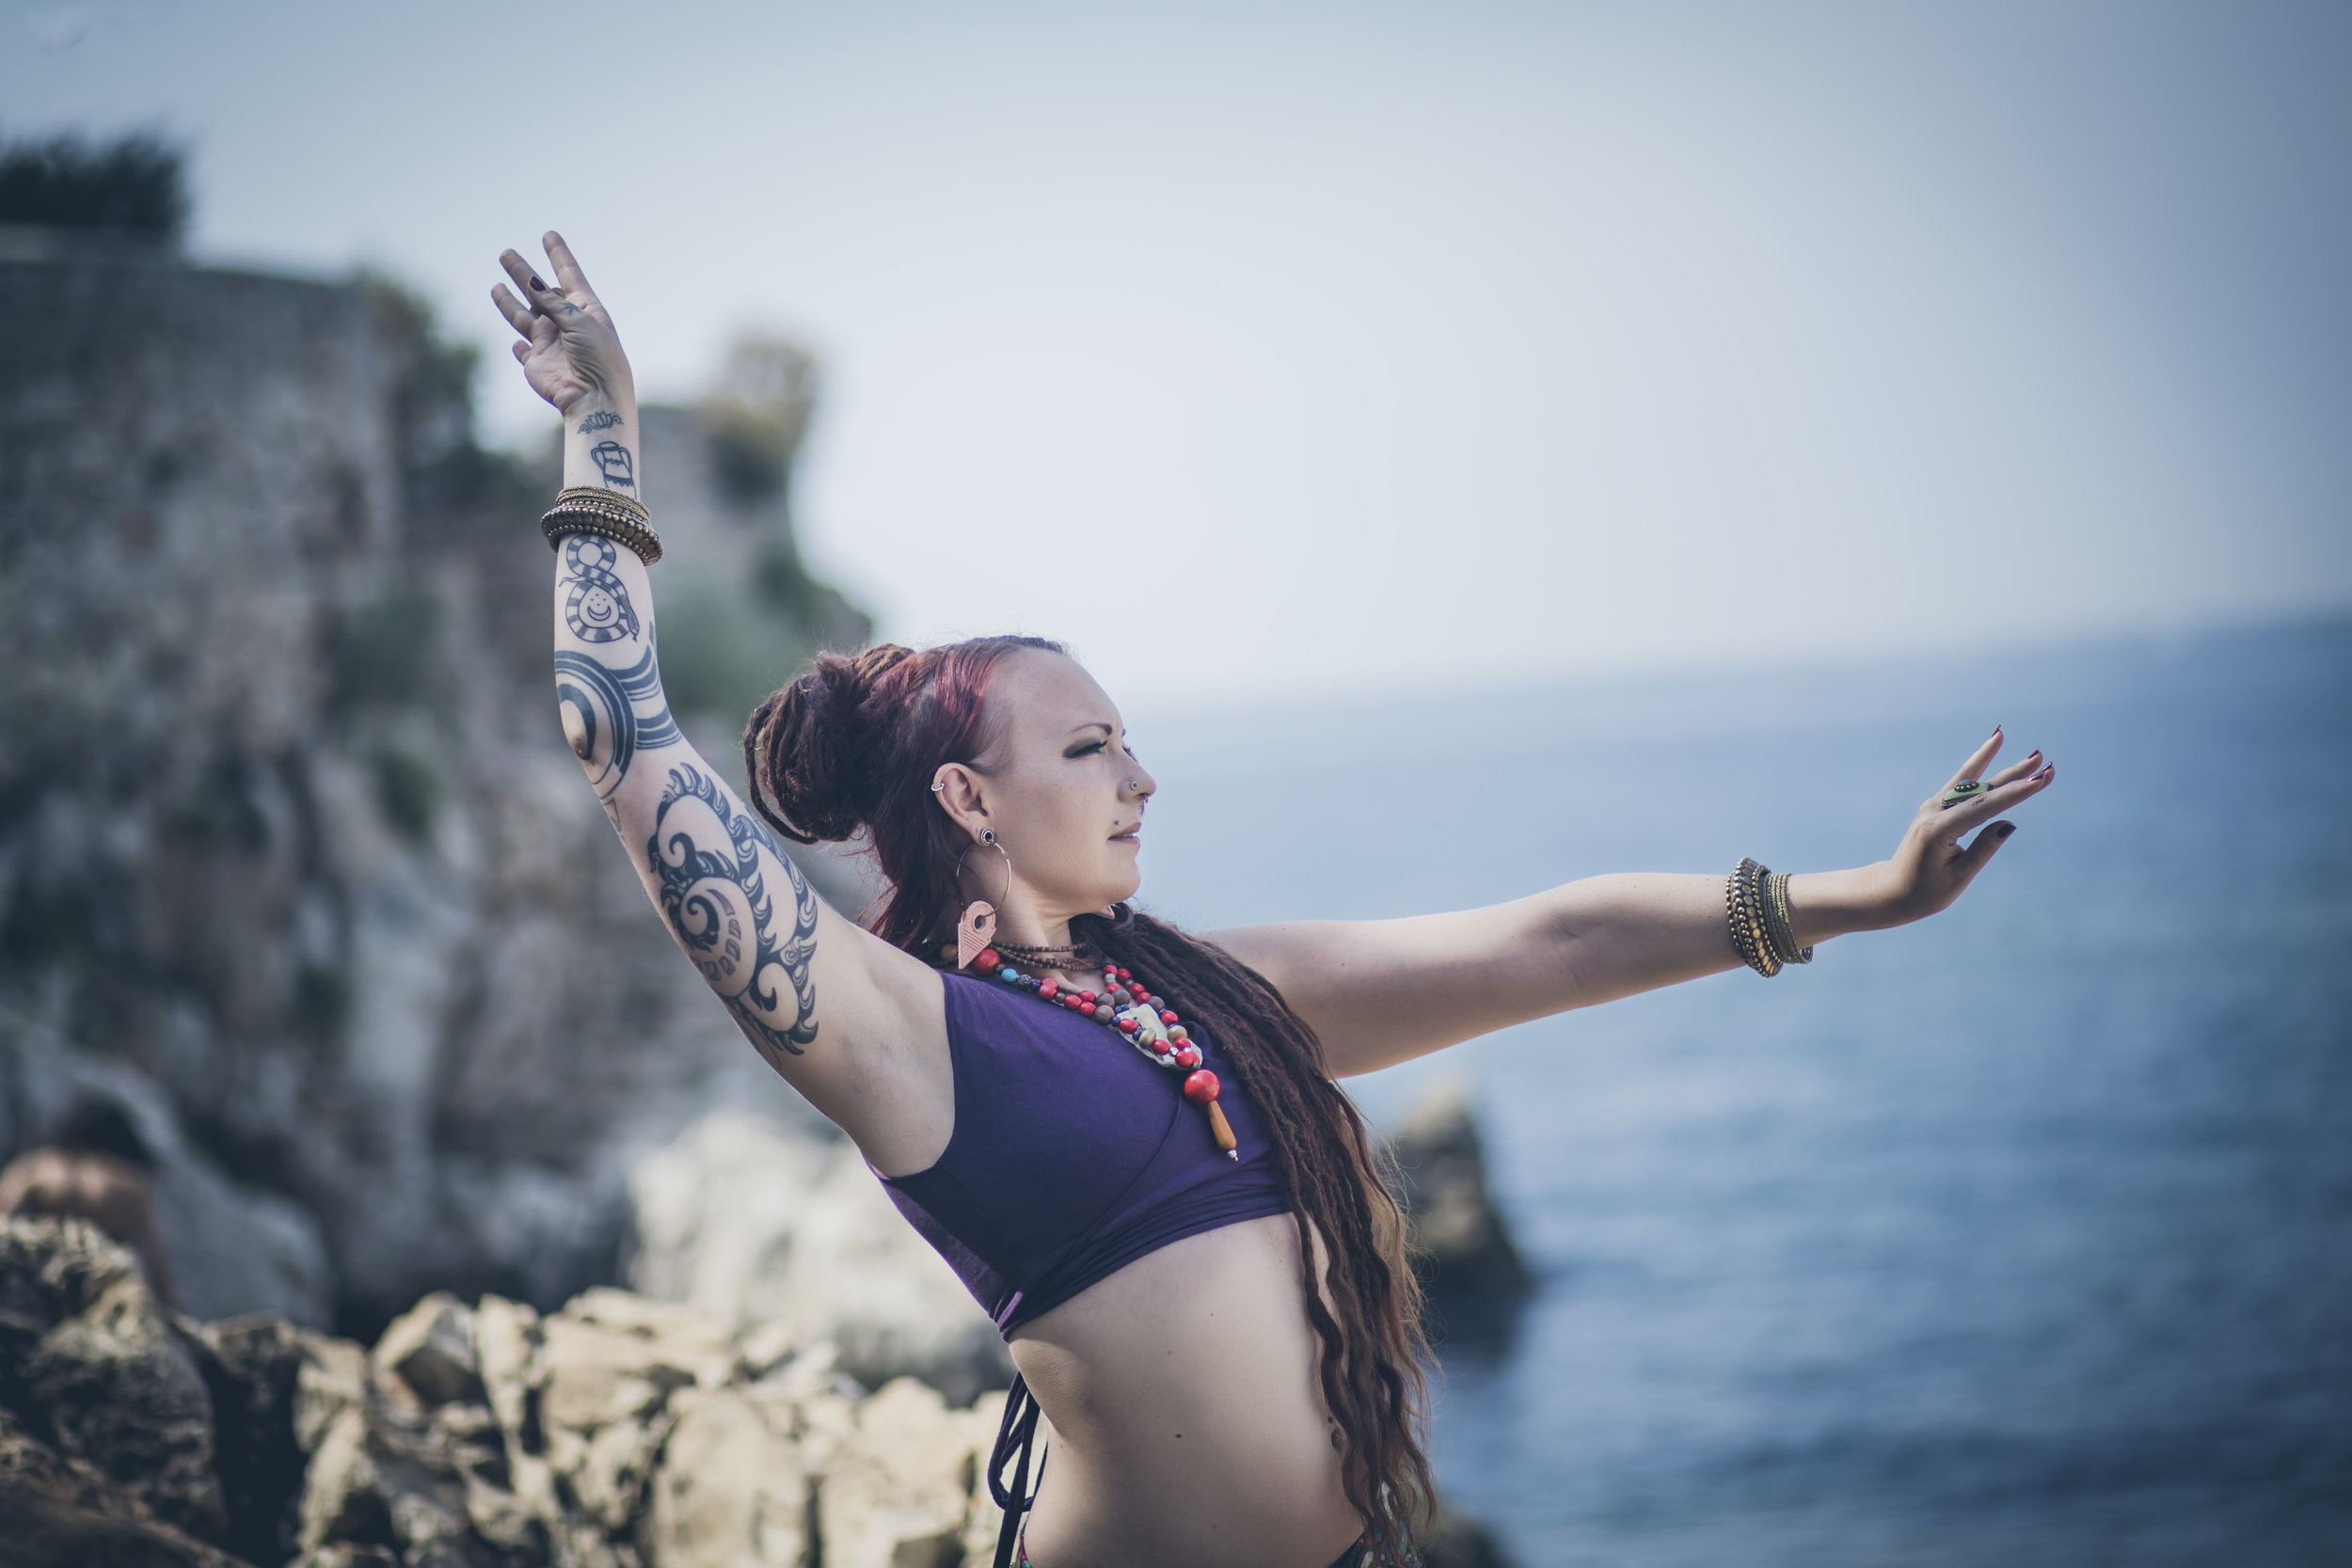 Image:  Nei Mad Photography  on location in Nice, France